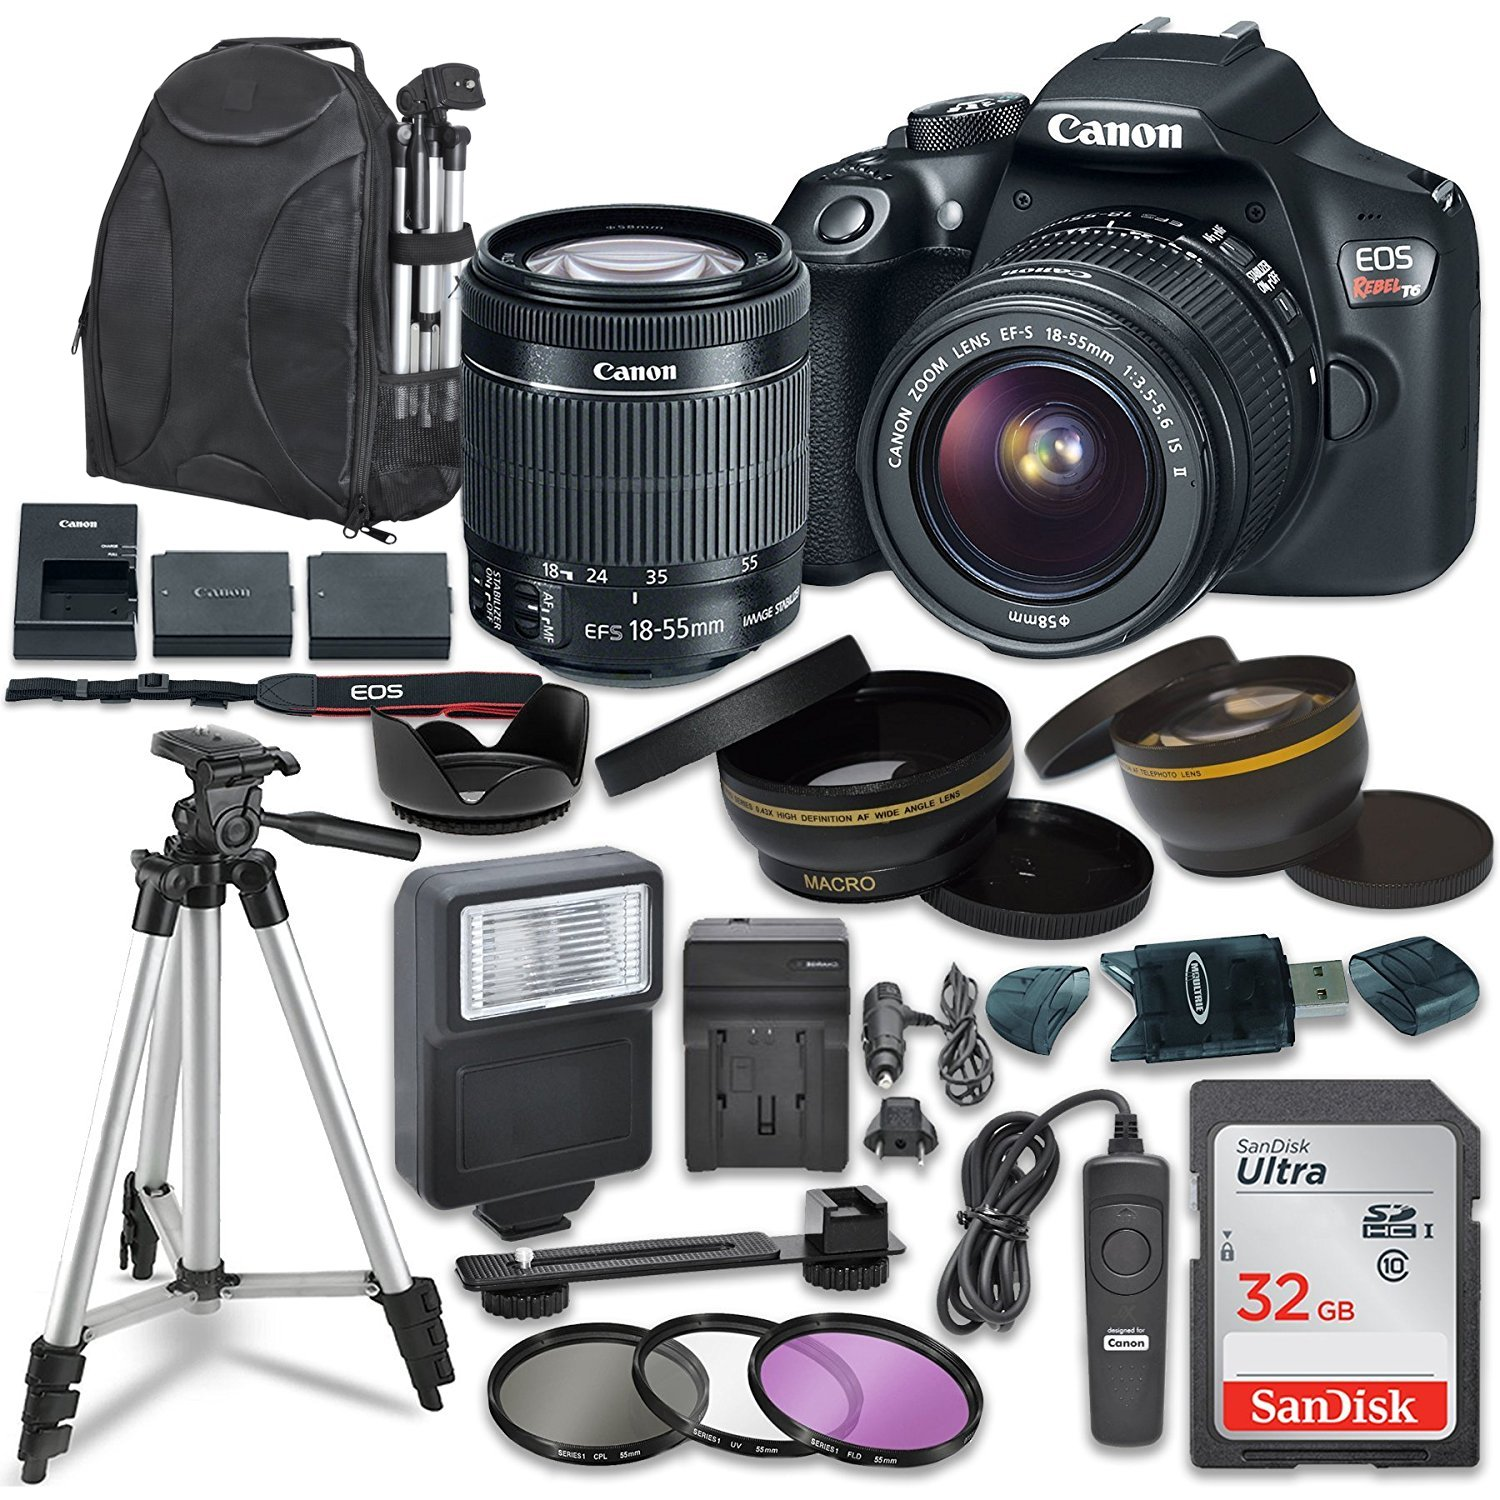 Canon EOS Rebel T6 Digital SLR Camera with Canon EF-S 18-55mm Image Stabilization II Lens, Sandisk 32GB SDHC Memory Cards, Accessory Bundle 81upr2BYqLcL._SL1500_